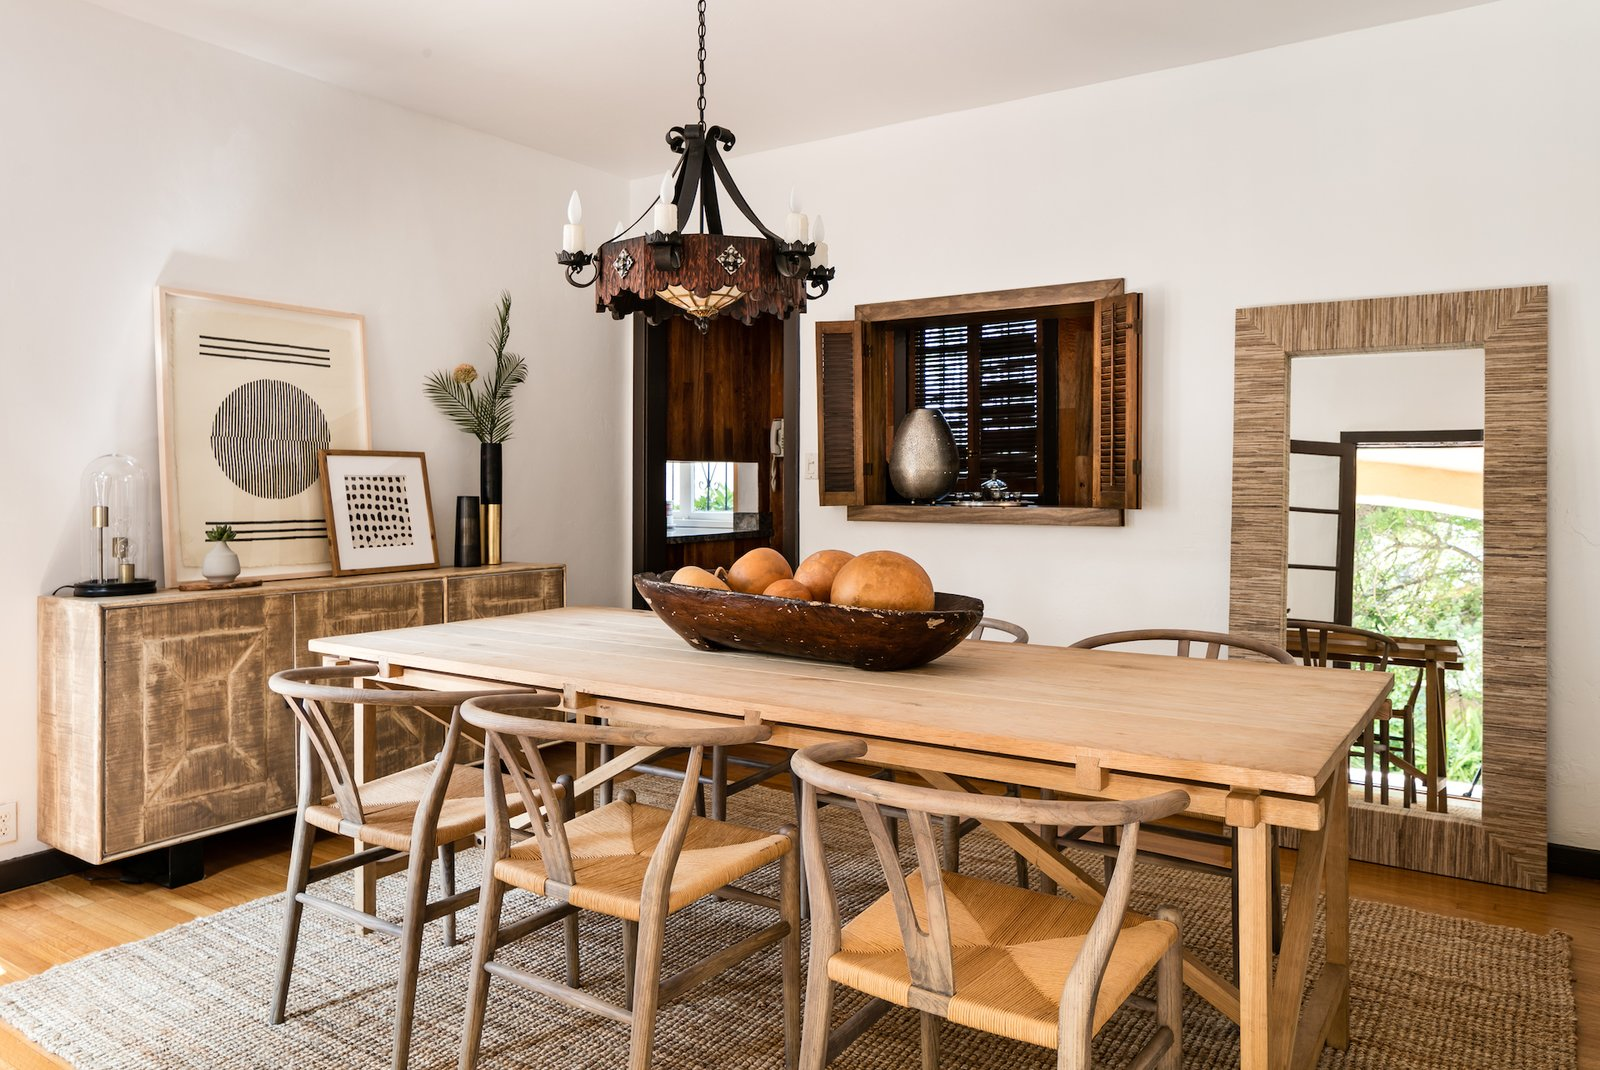 Spacious Spanish Revival, Dining Room In Spanish